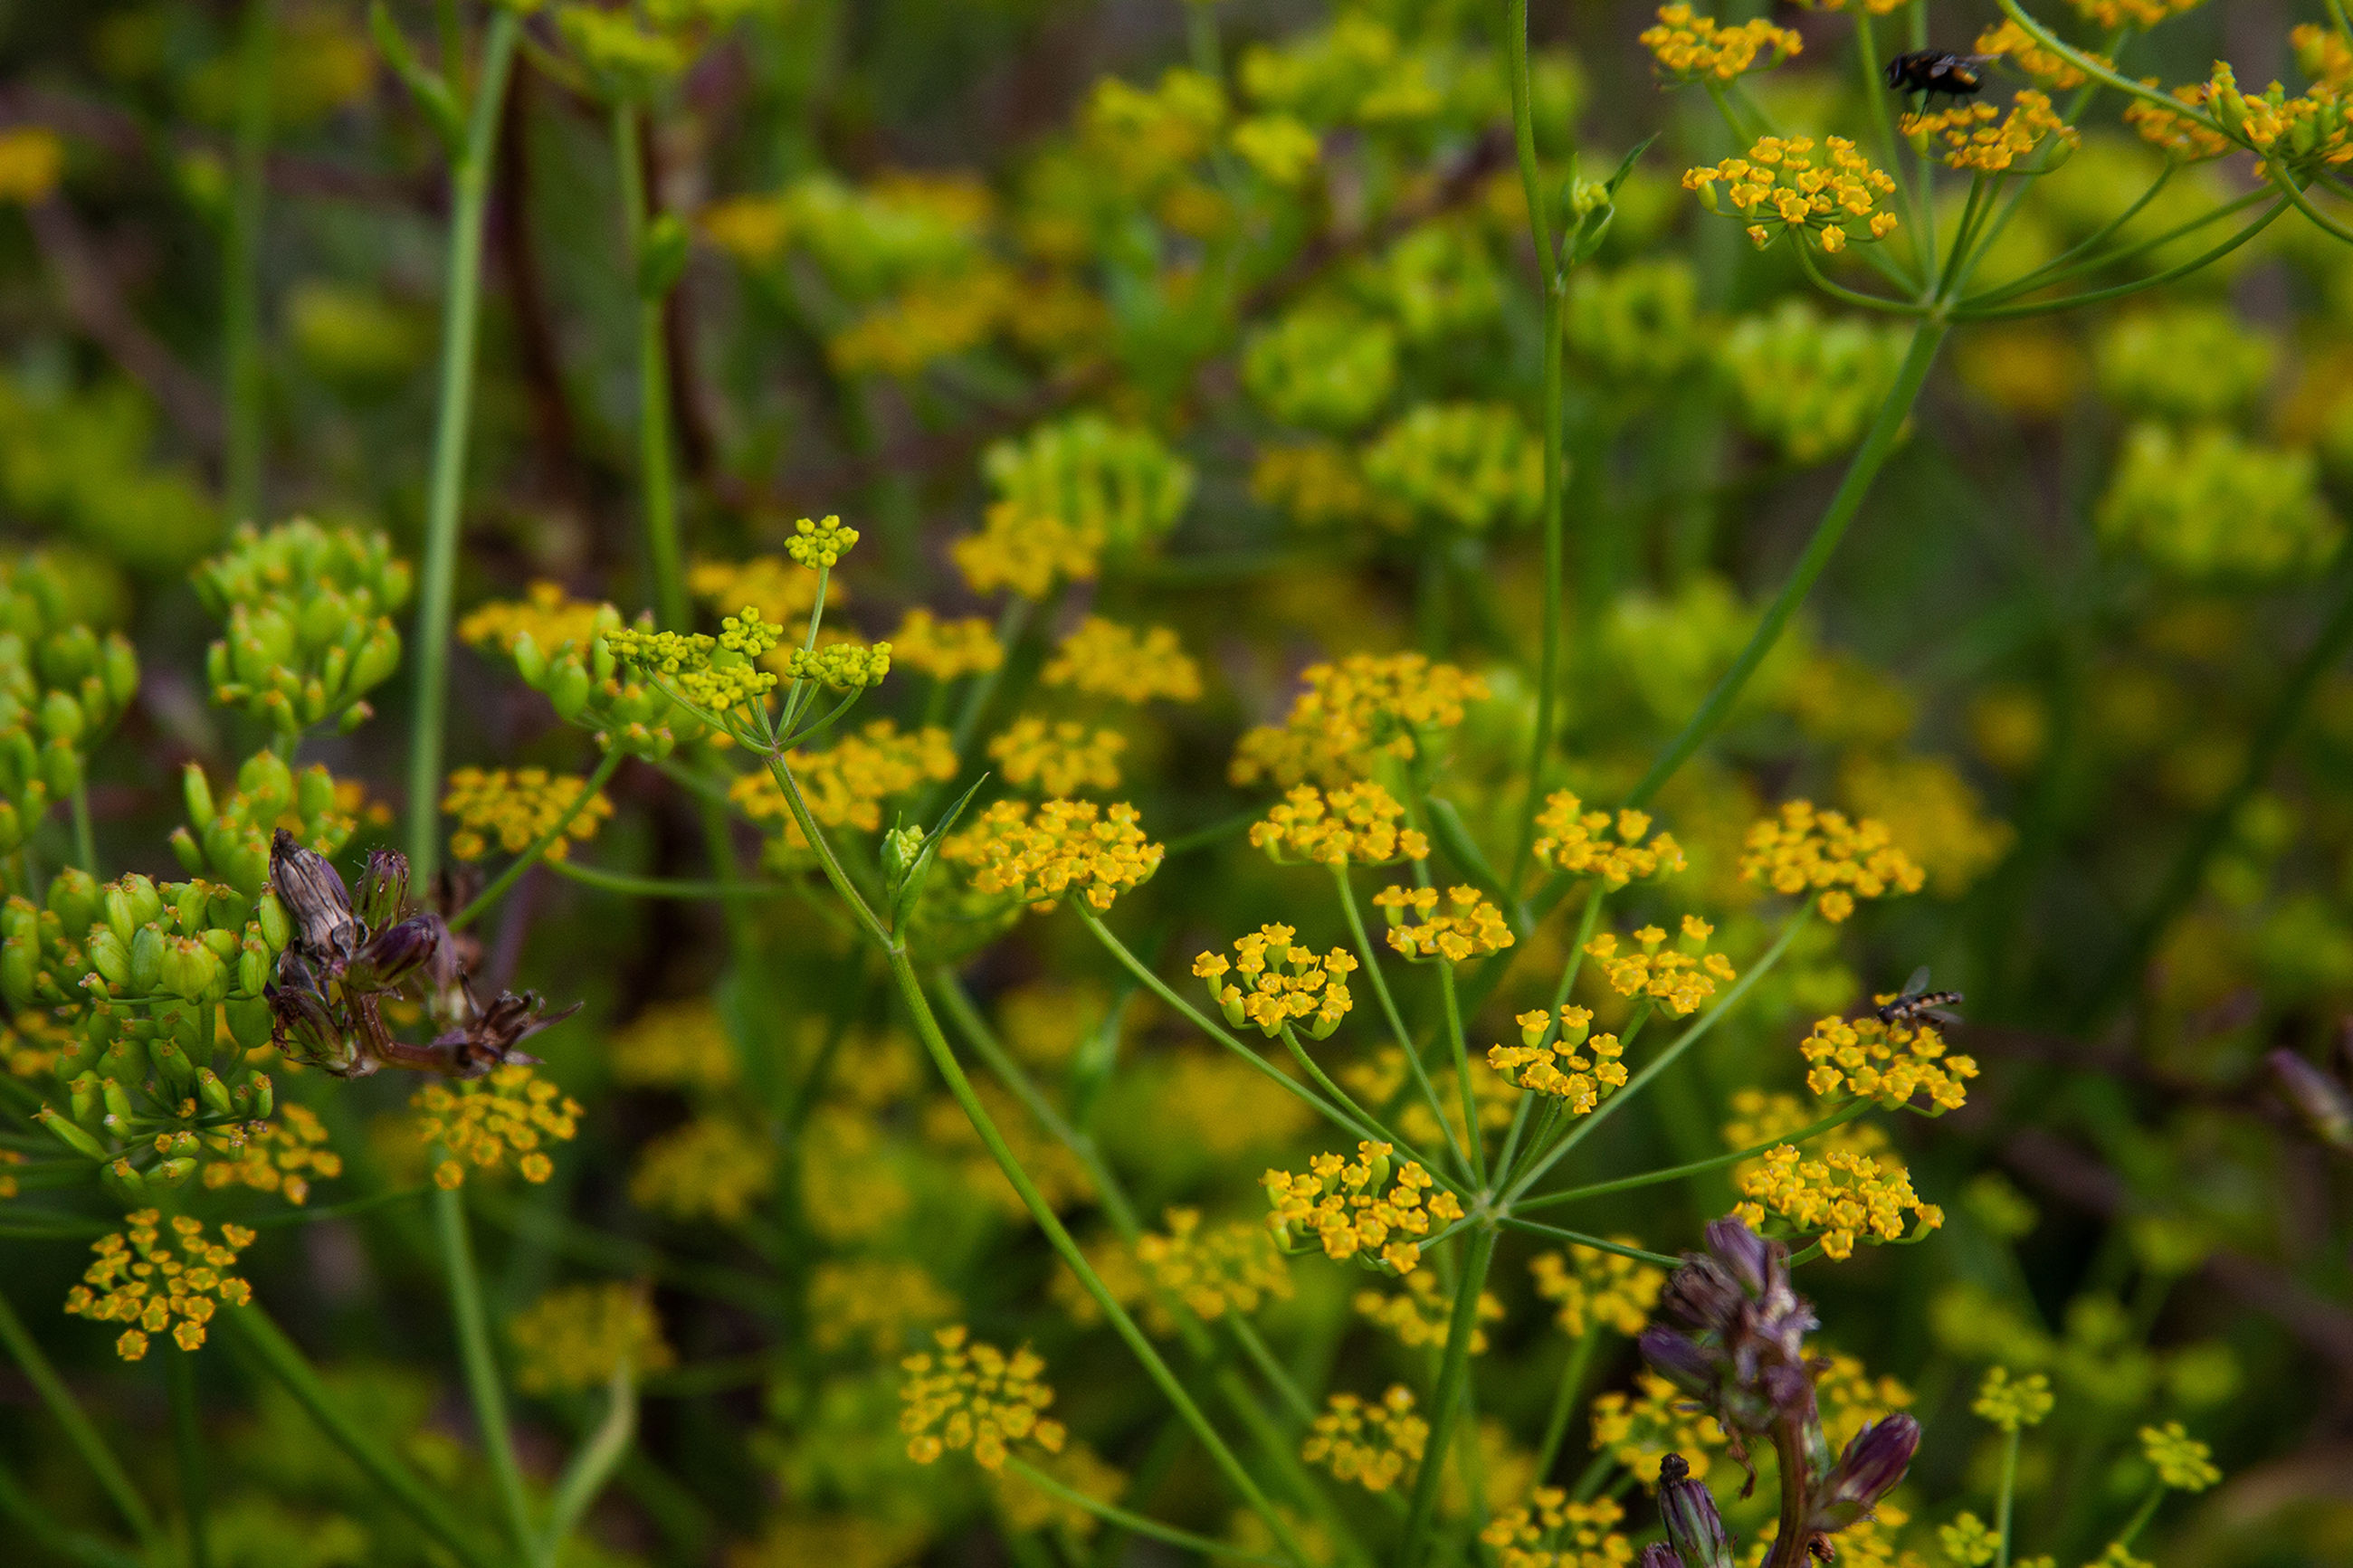 flower, flowering plant, plant, beauty in nature, growth, freshness, fragility, vulnerability, yellow, nature, day, close-up, selective focus, no people, green color, focus on foreground, petal, outdoors, flower head, land